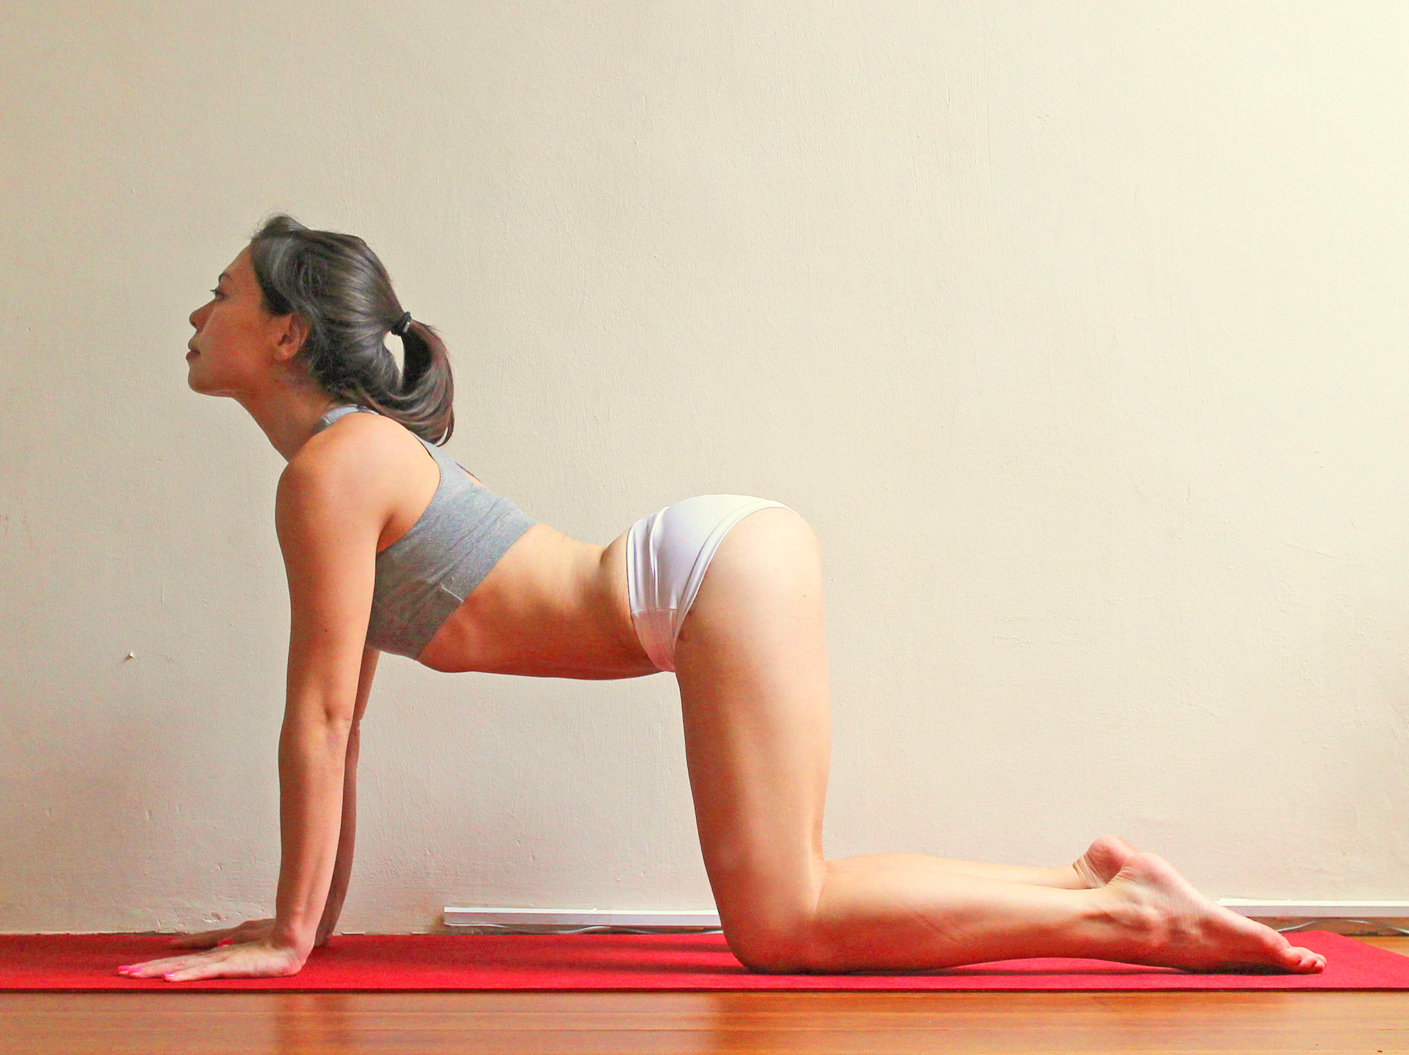 Yoga lessons for better health and fitness